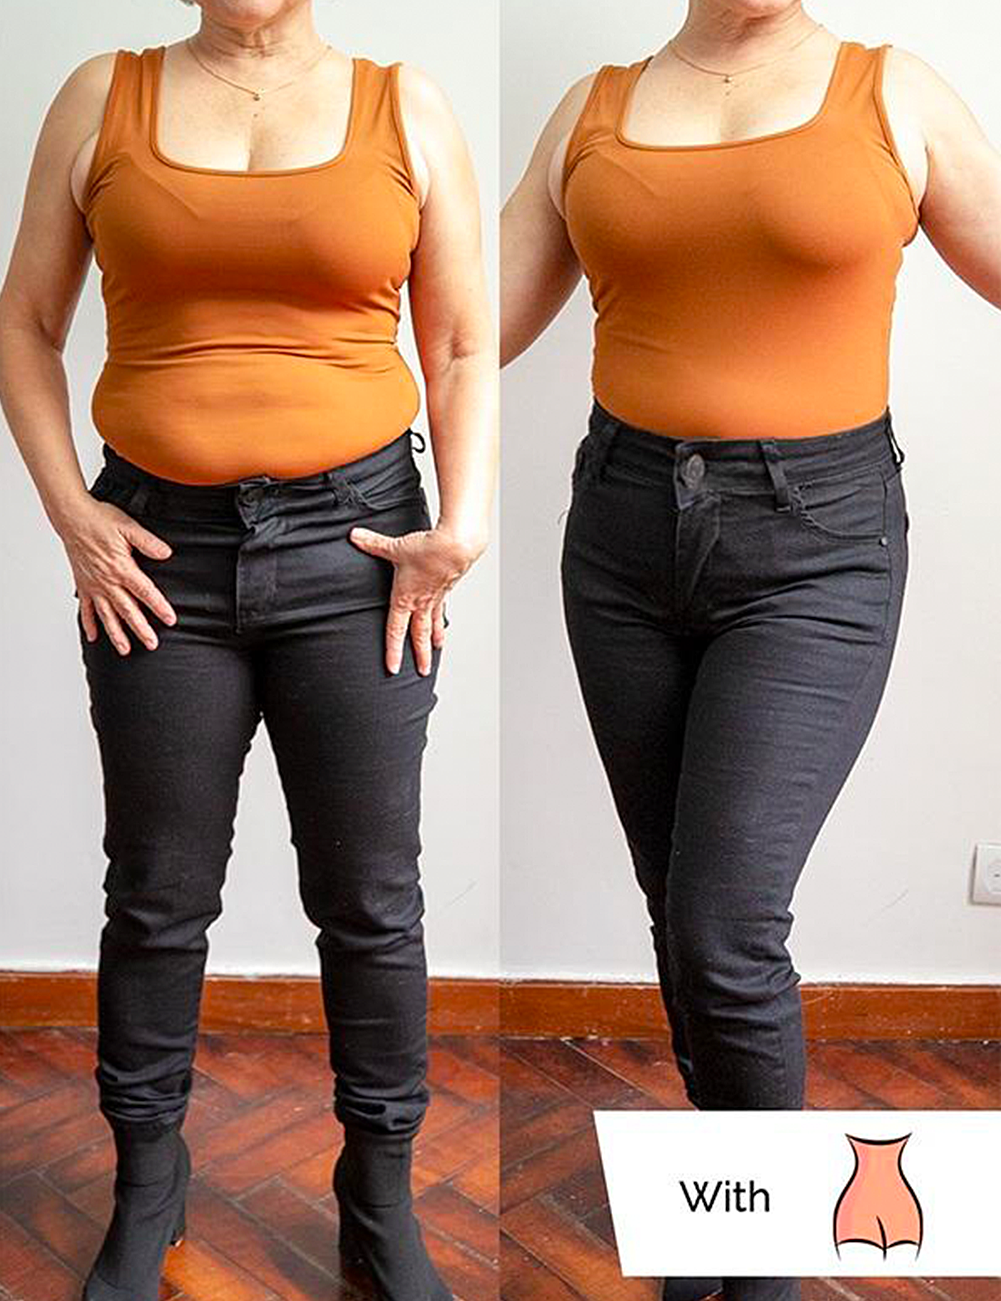 Find Comfortable Tummy Control Shapewear for Plus Size